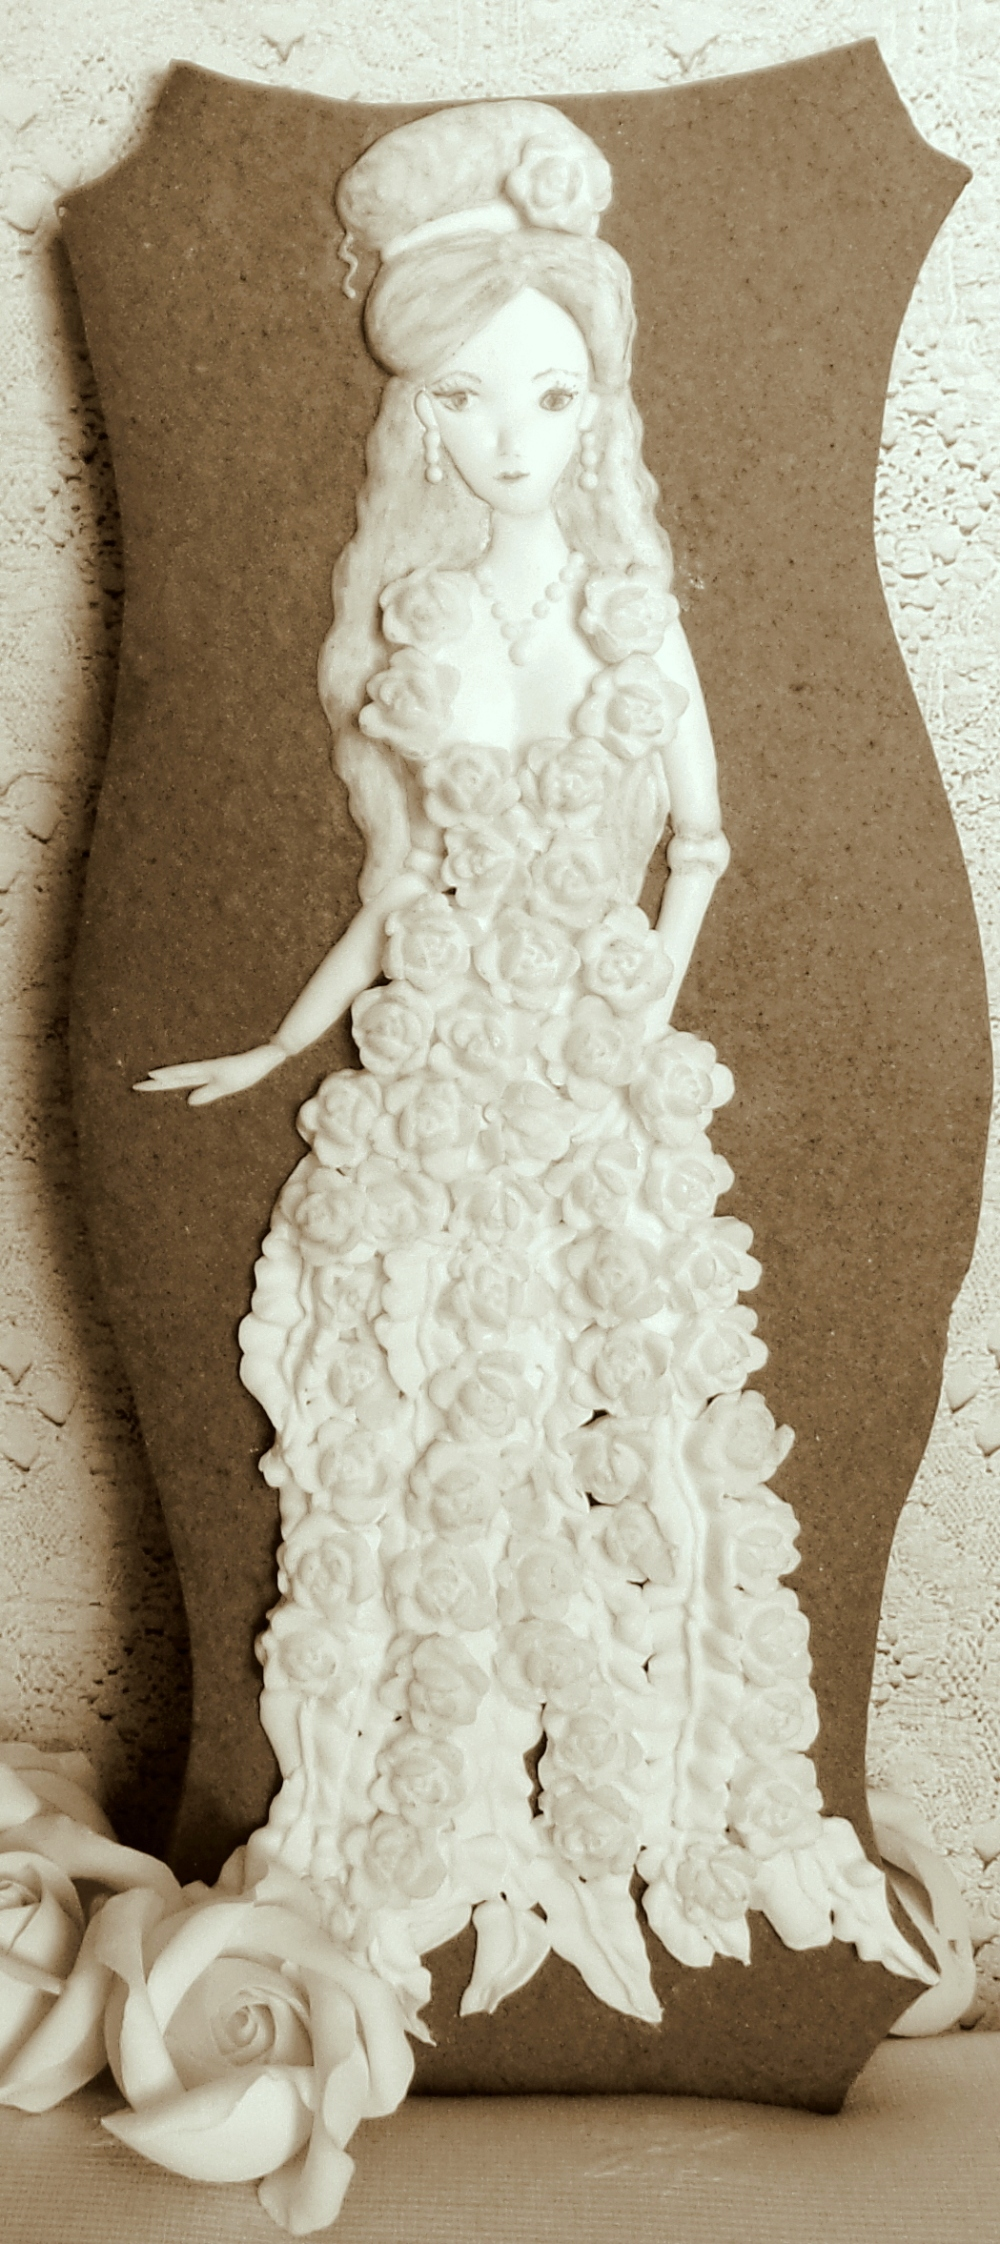 Sepia Rose Doll | The Cookie Architect